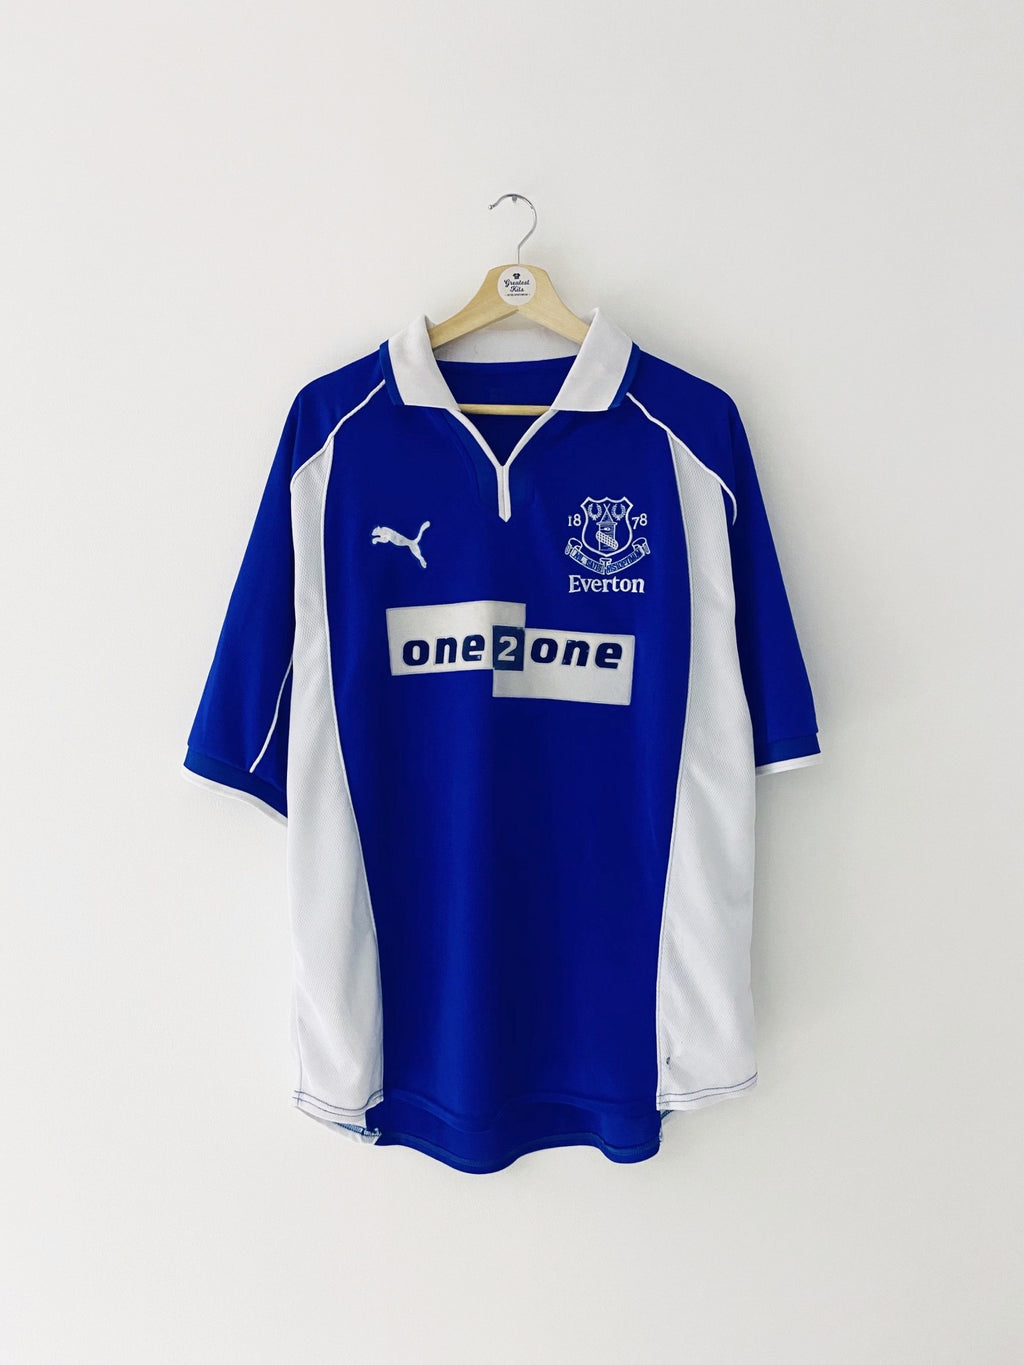 2000/02 Everton Home Shirt (L) 5.5/10